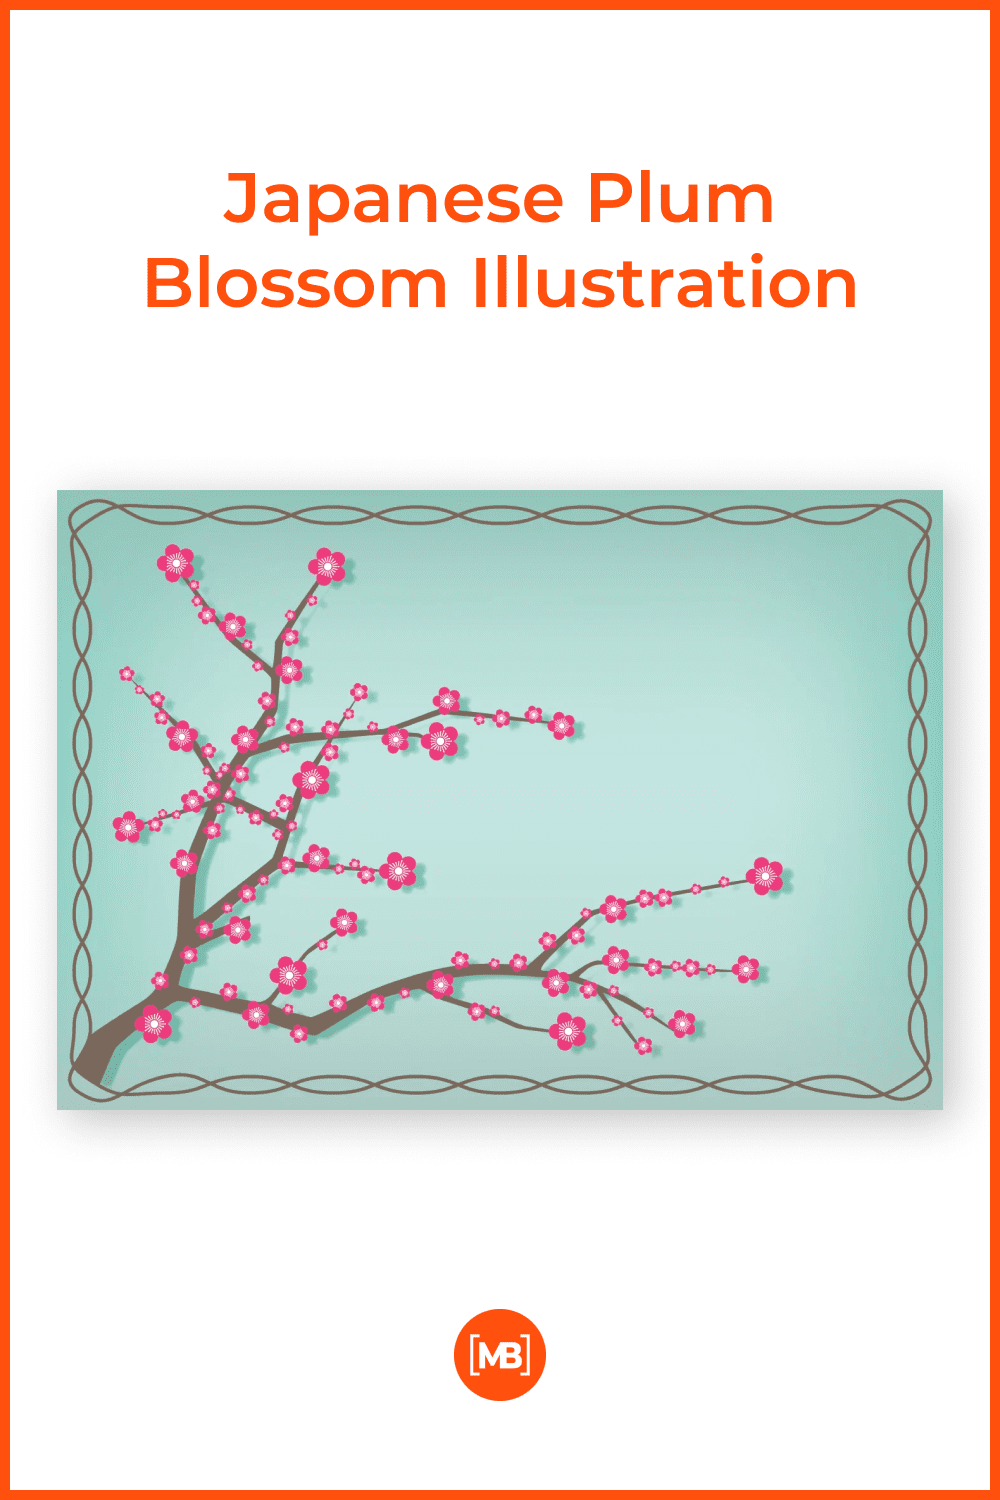 Cute and delicate Japanese plum.